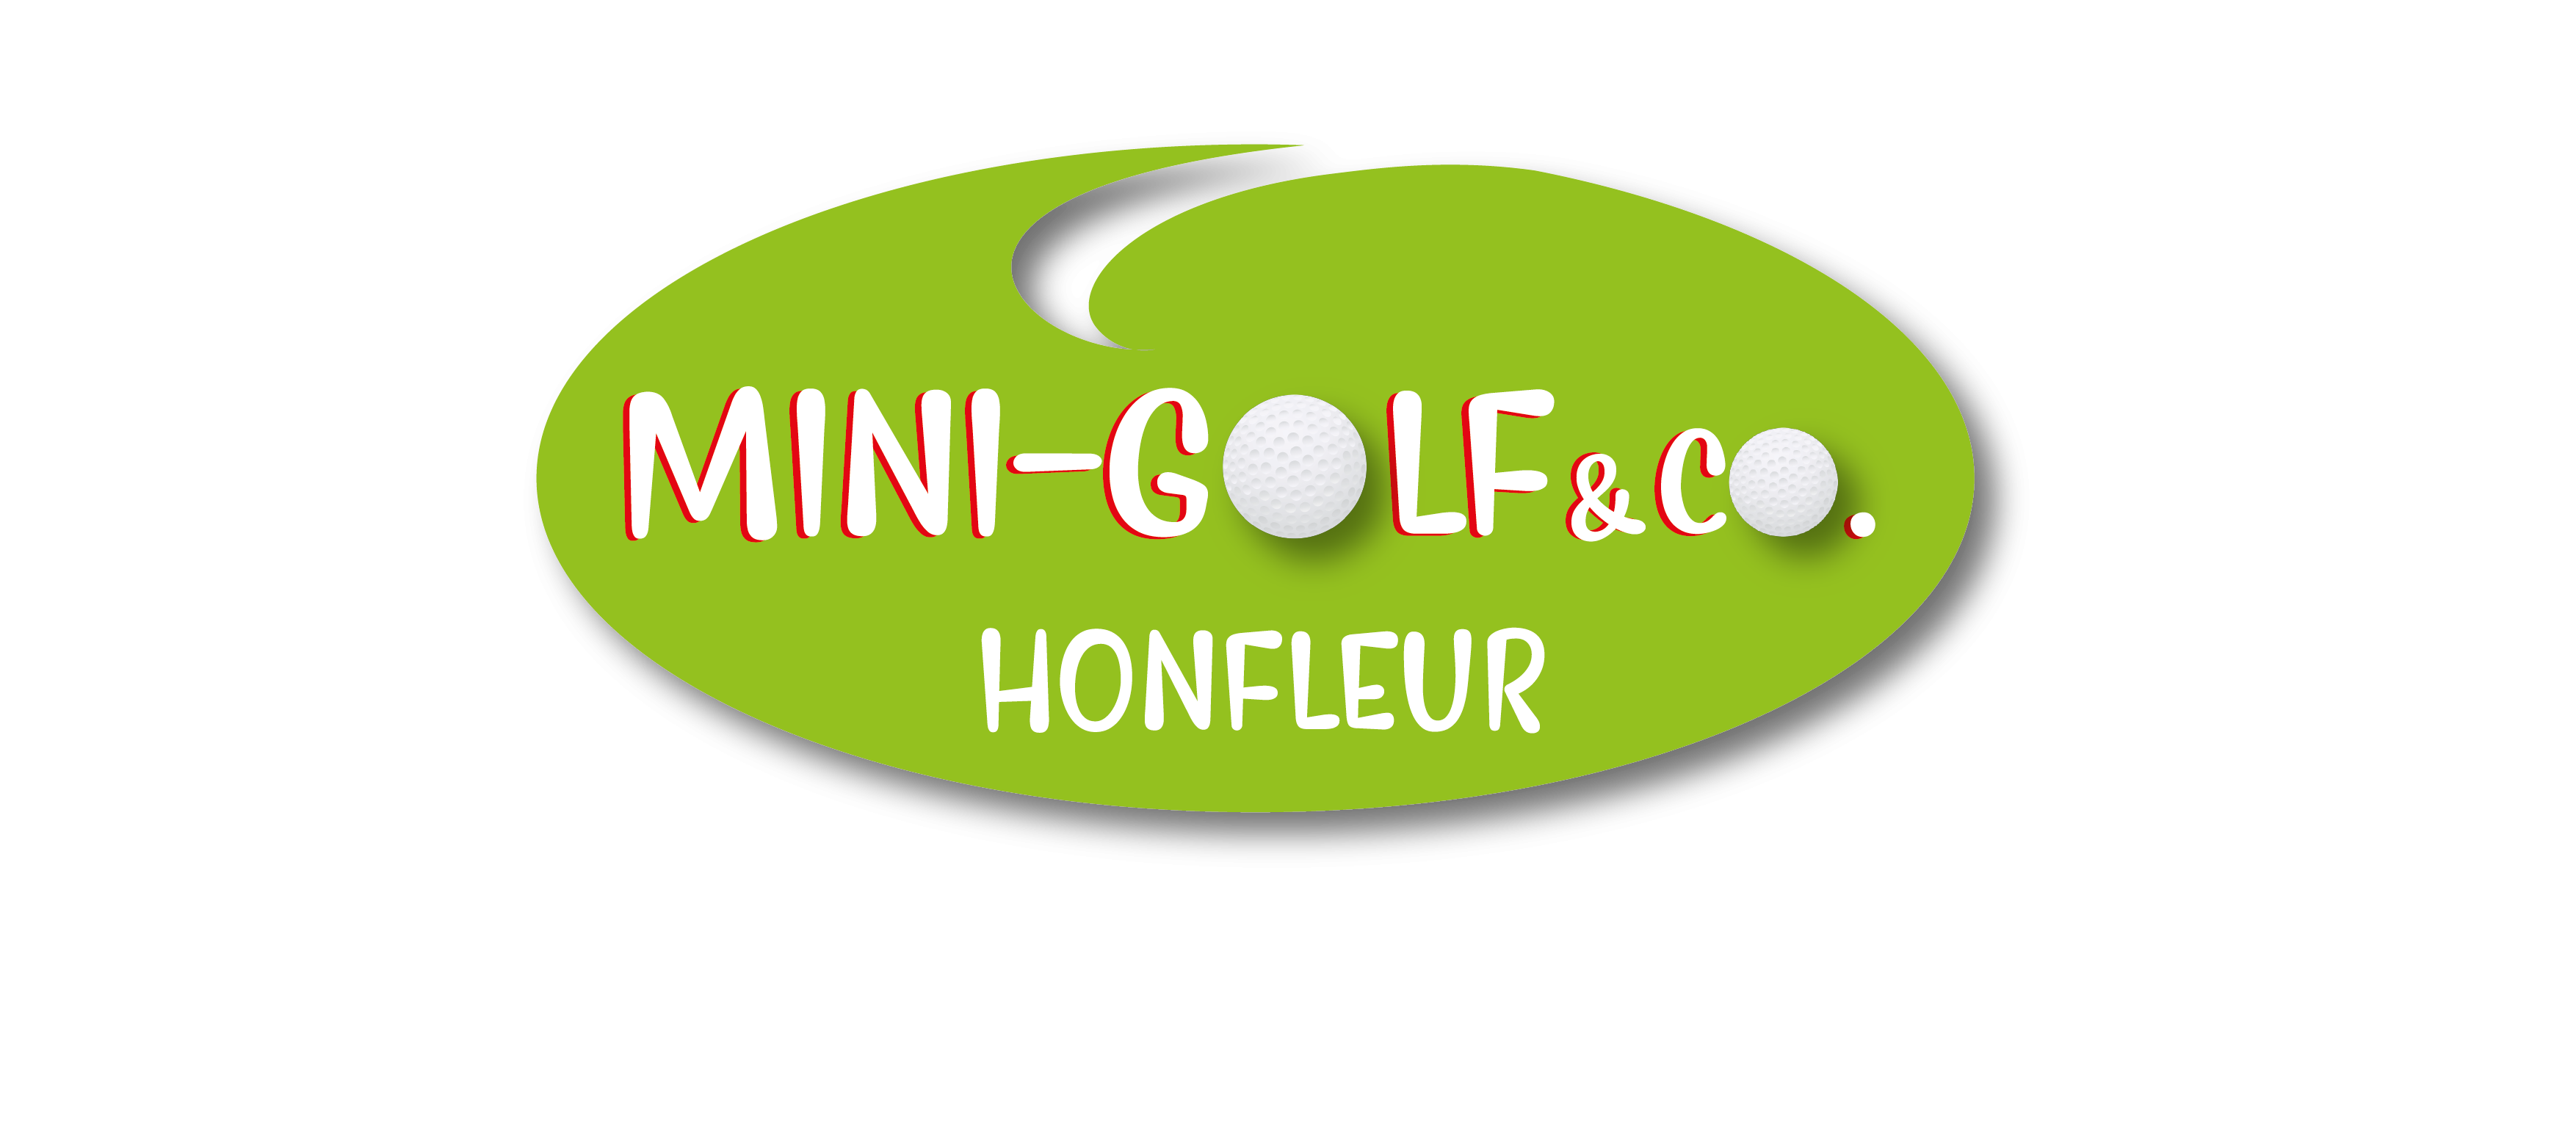 Mini-Golf and co.